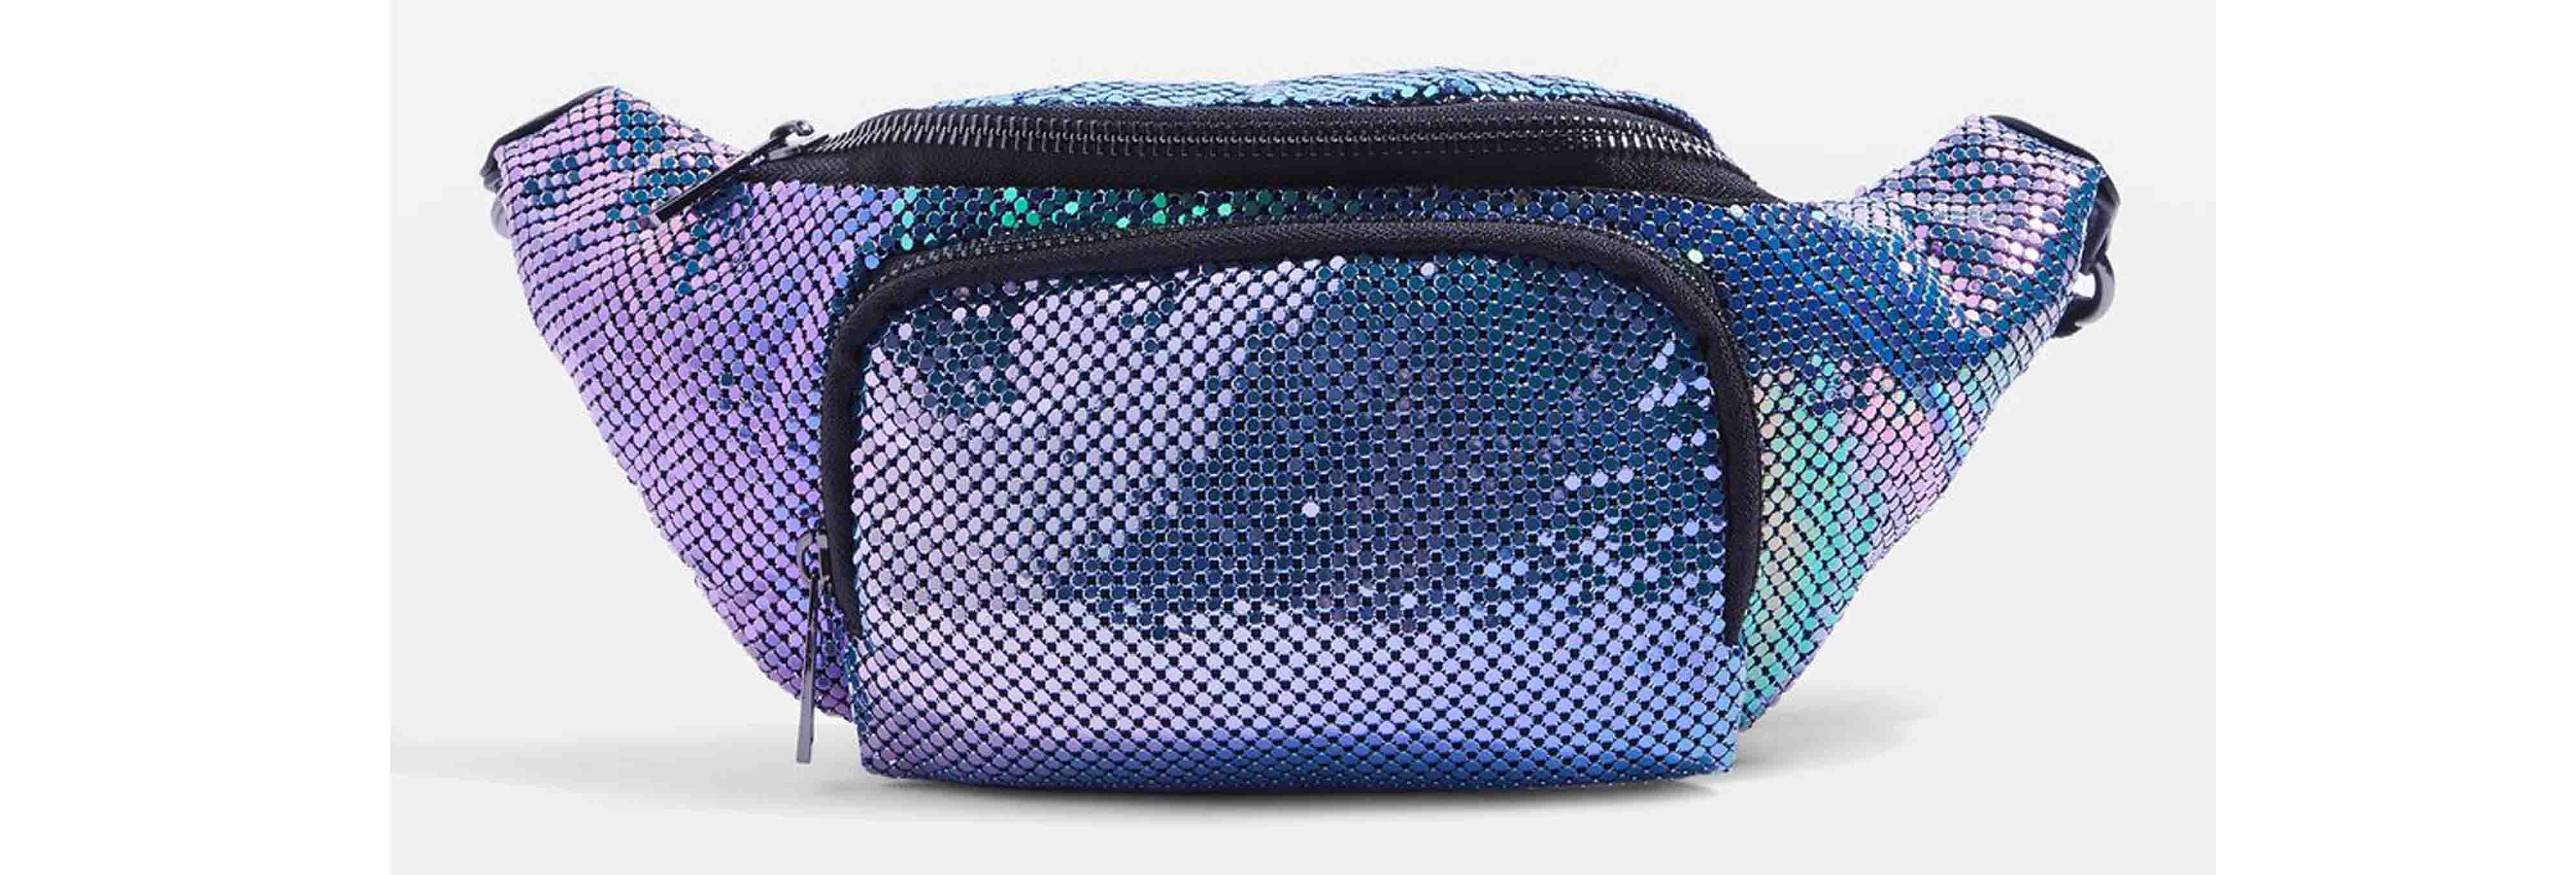 Topshop Flava Chainmail Bum Bag